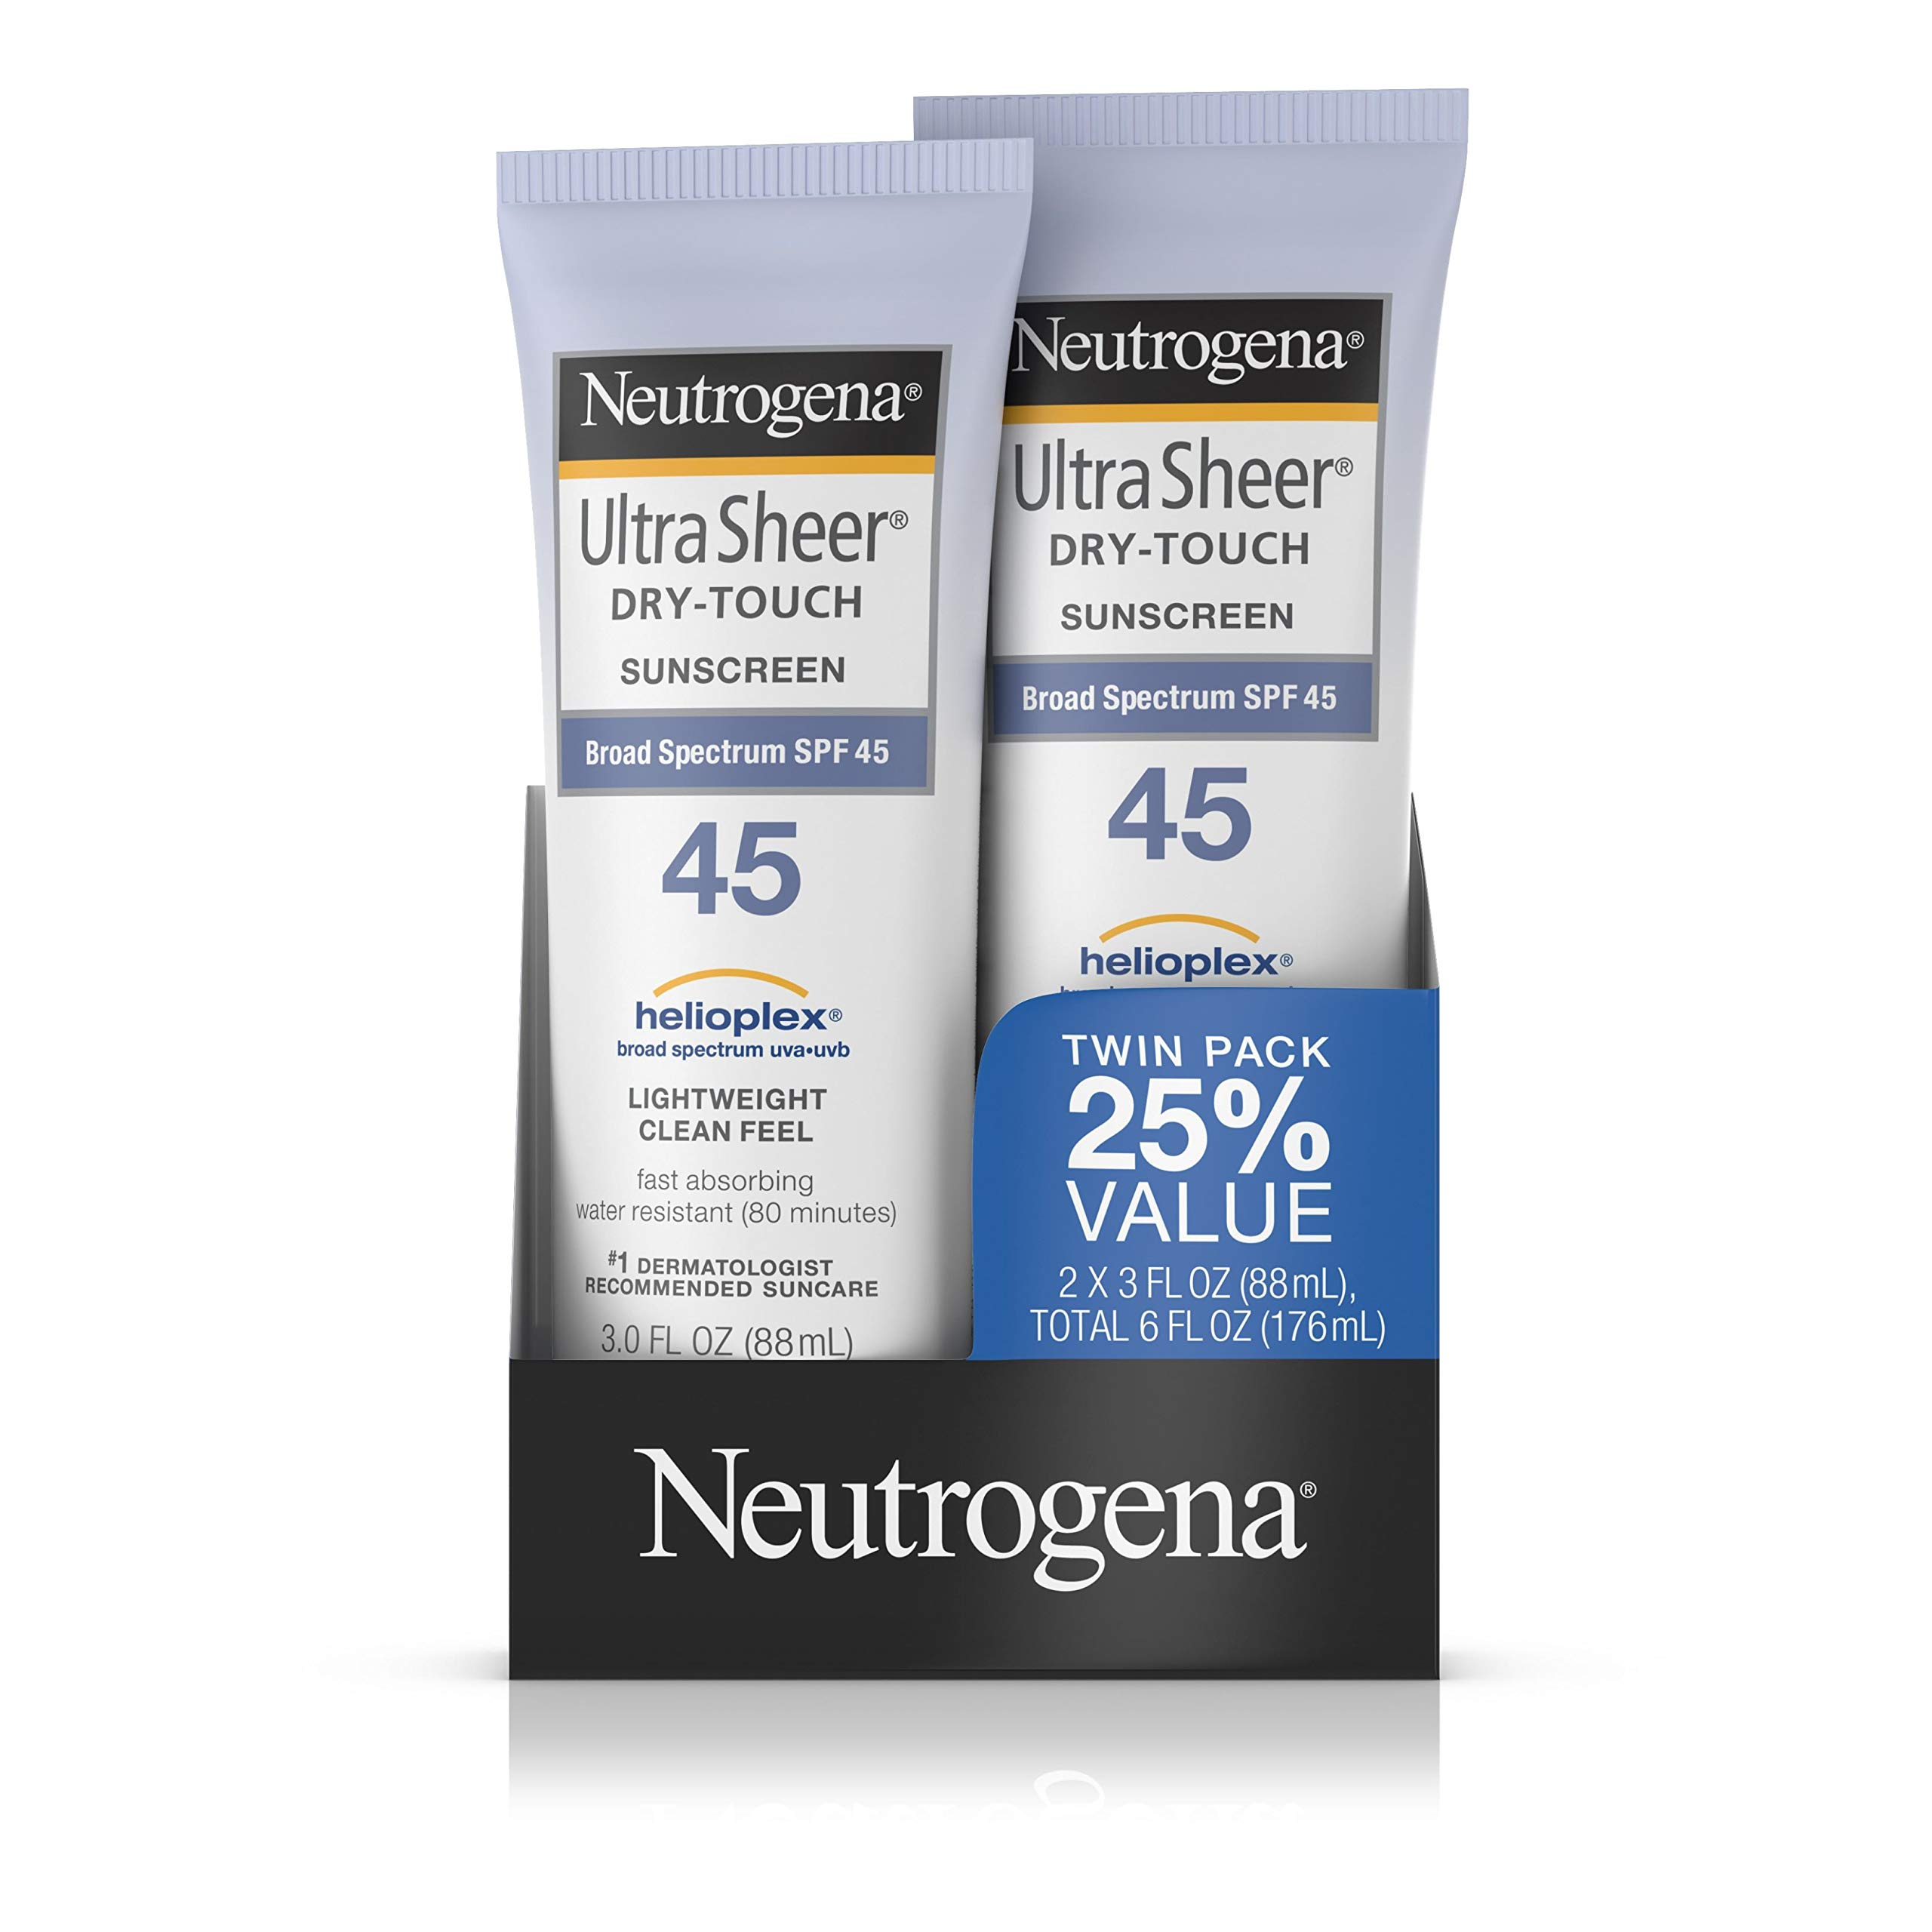 Neutrogena Ultra Sheer Dry-Touch Water Resistant and Non-Greasy Sunscreen Lotion with Broad Spectrum SPF 45, 3 fl. oz, Pack of 2 by Neutrogena